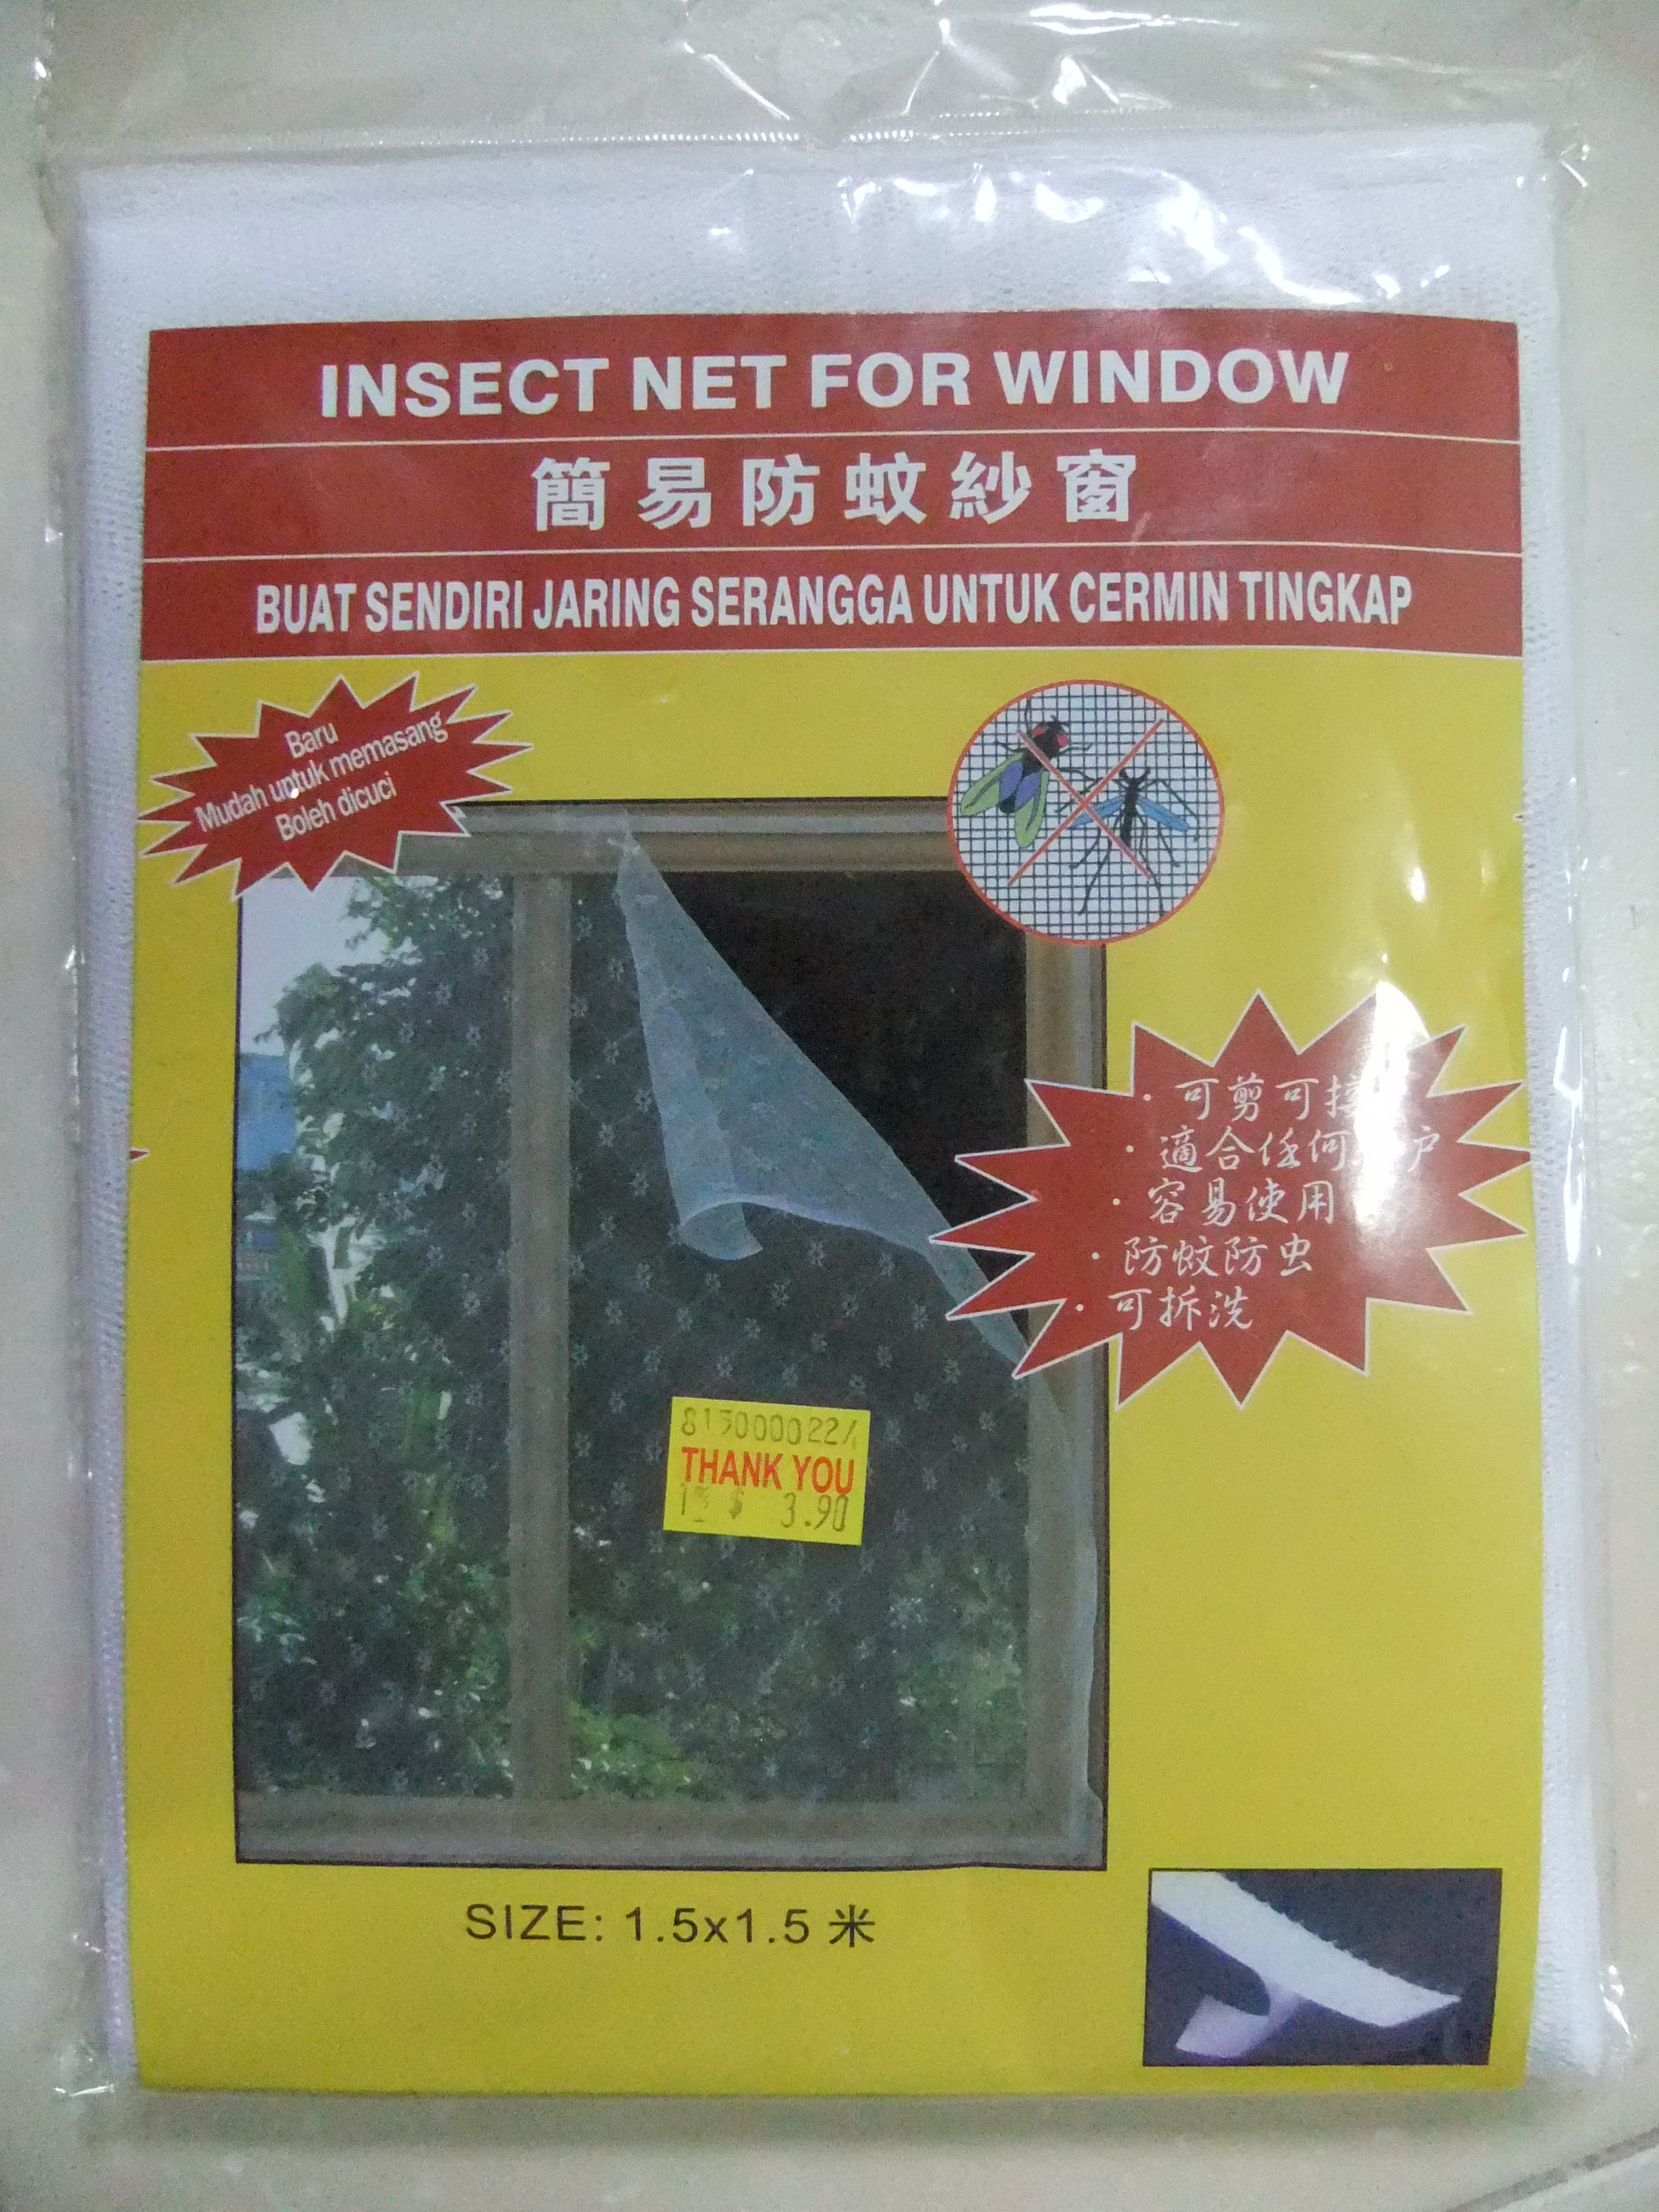 Window mosquito net kit from the local hardware store